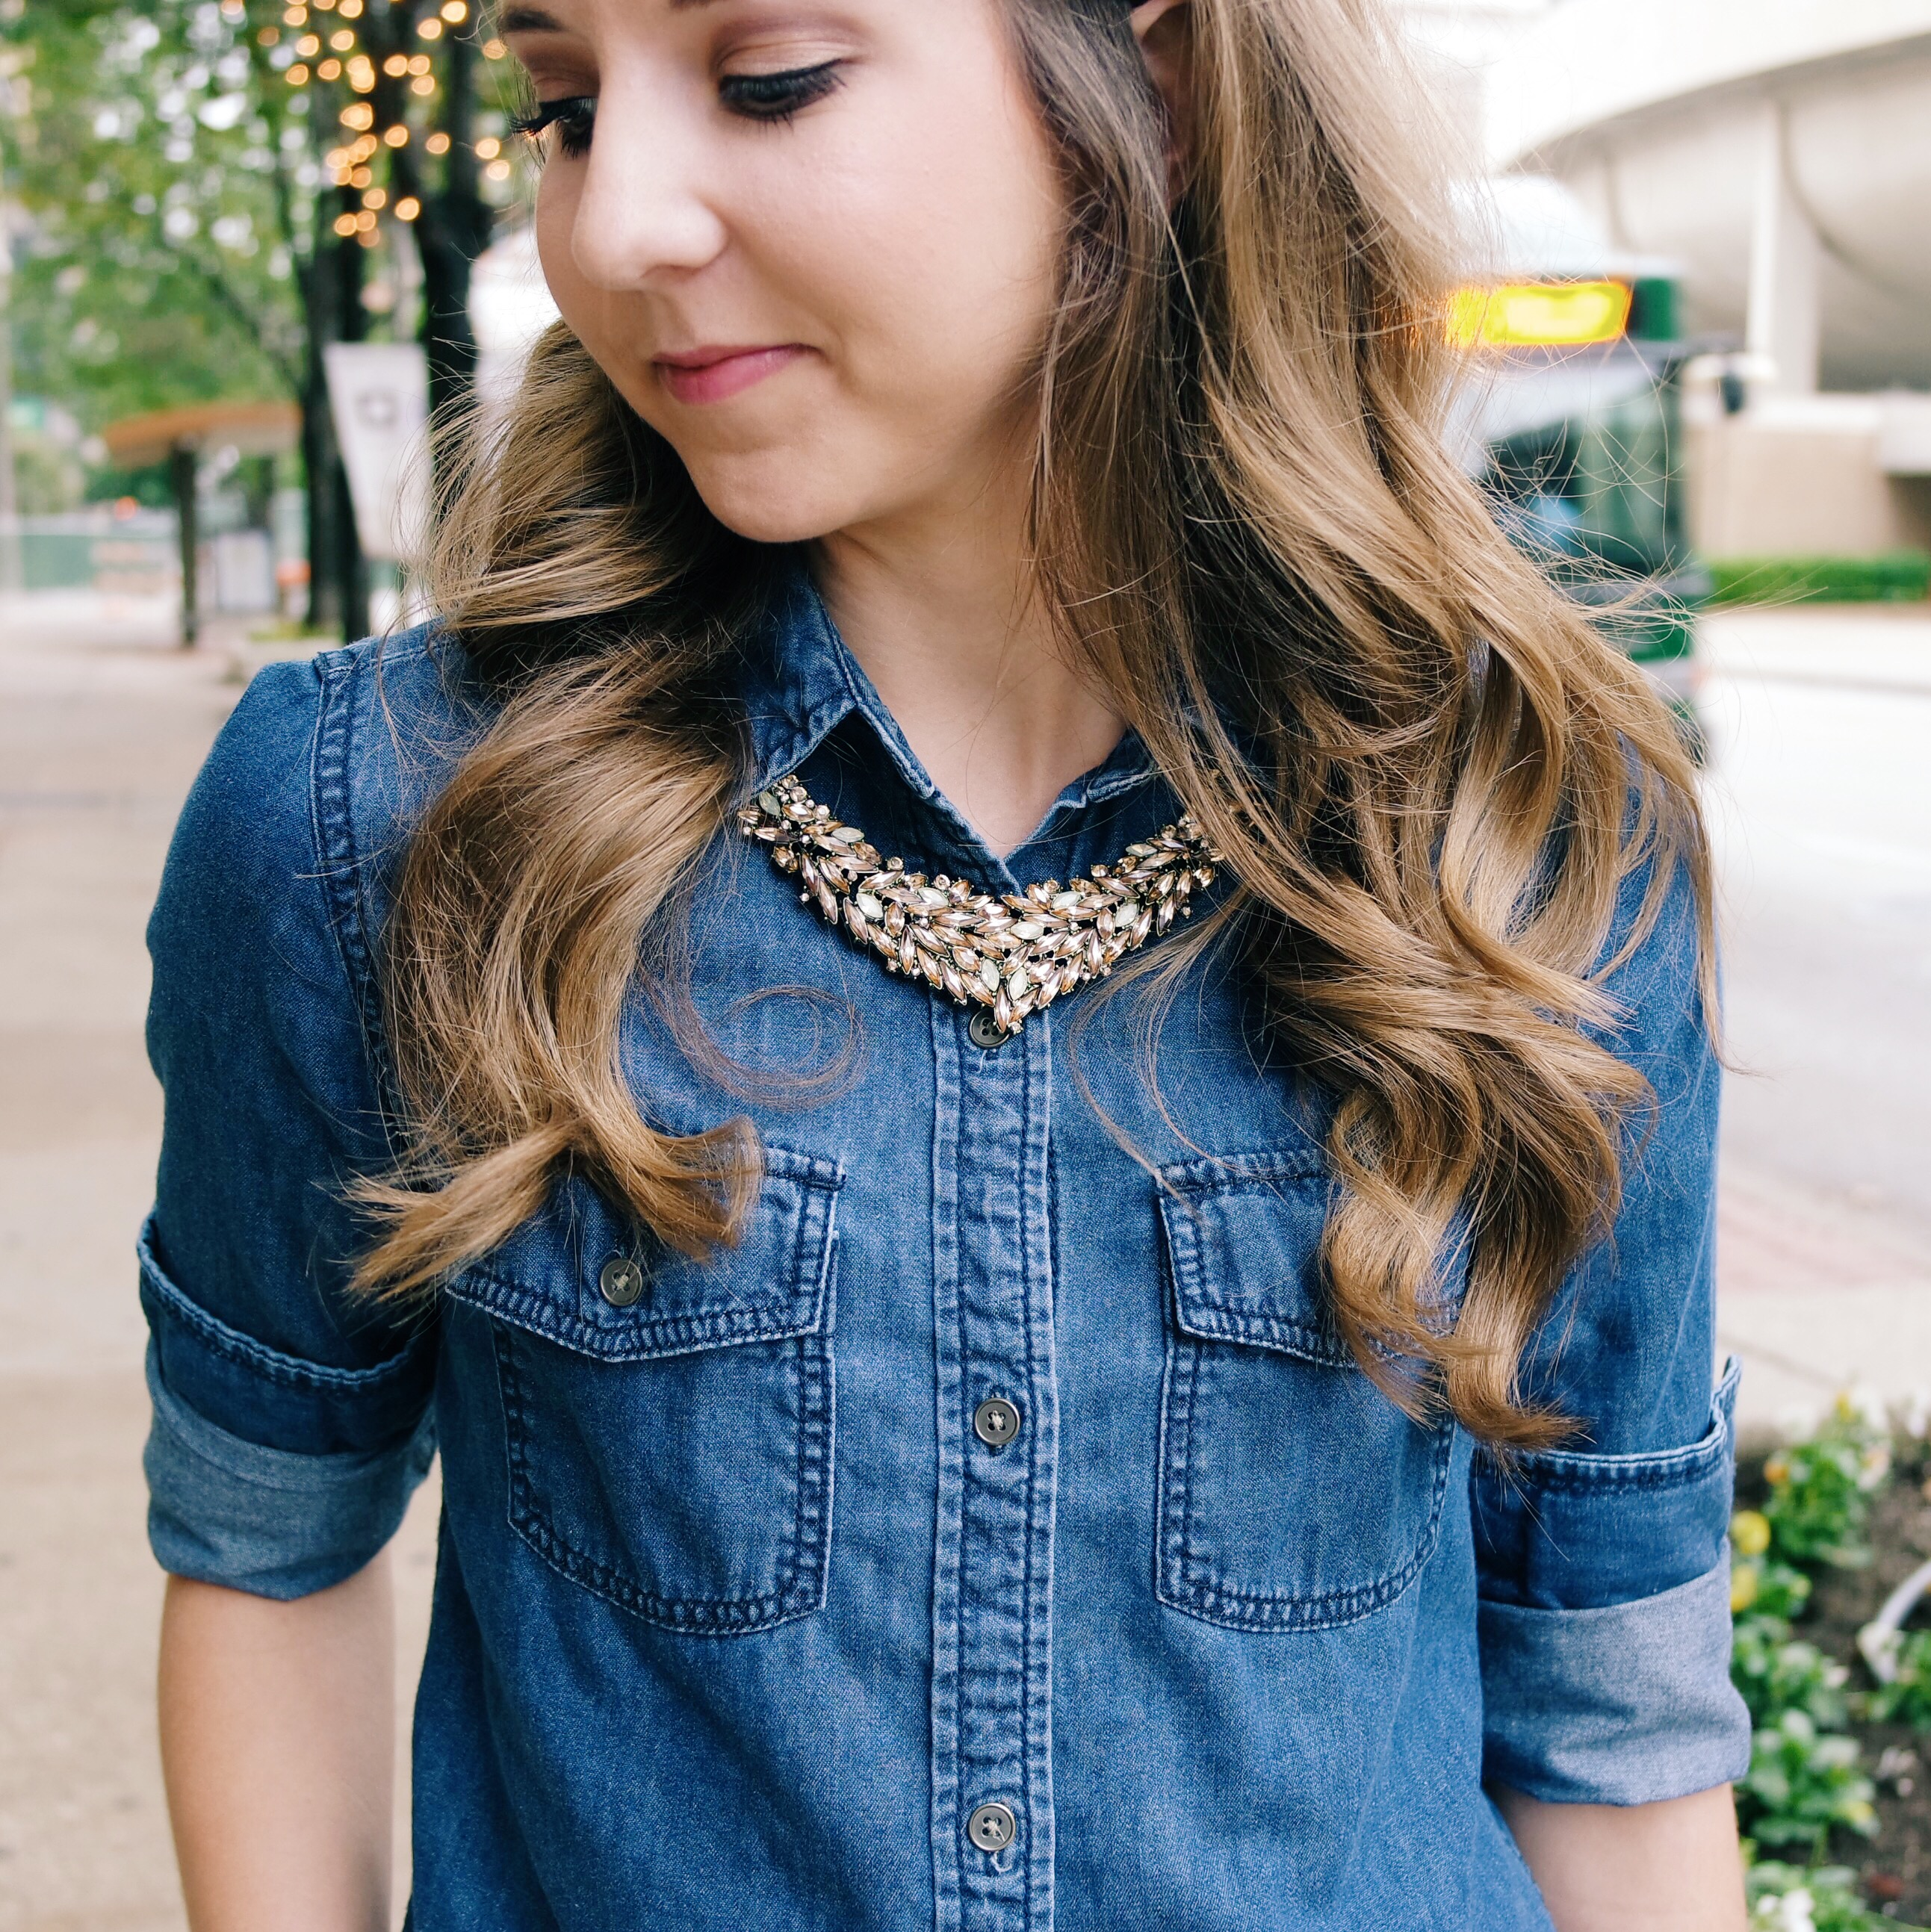 Fall Sparkles with Statement Necklaces